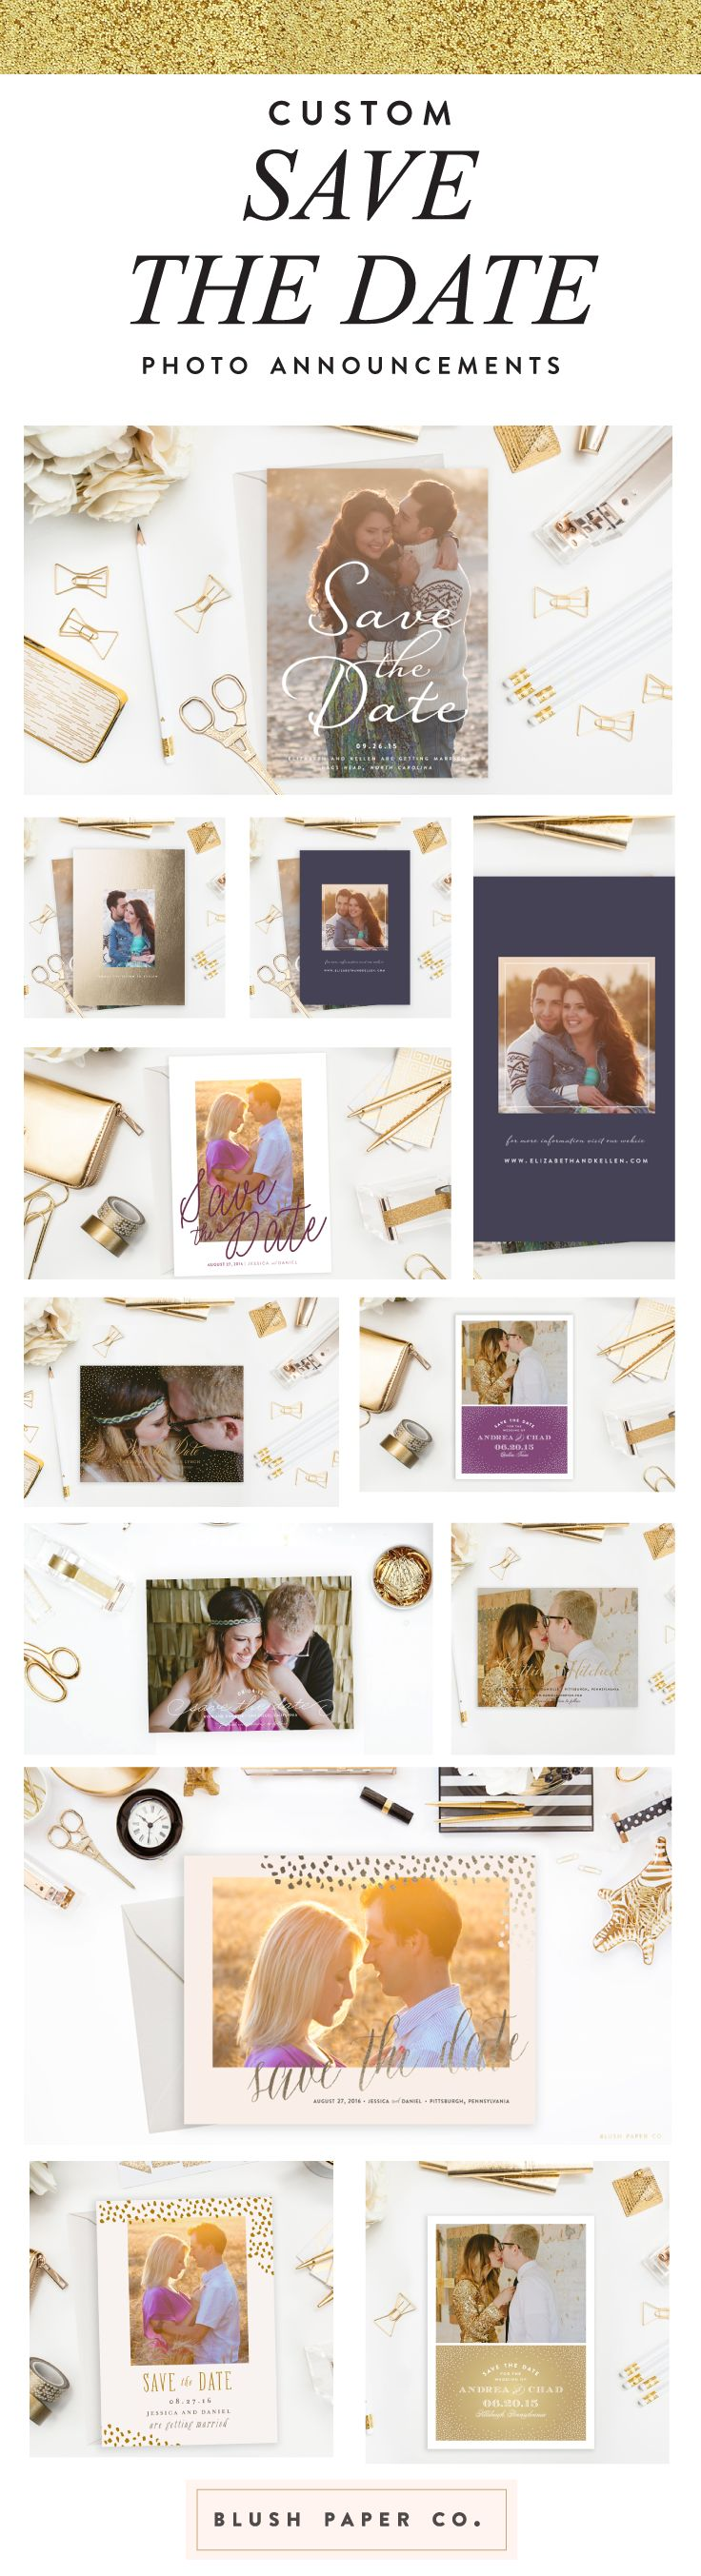 Save the Date - Invitations, Announcements, and Photo Save date photo announcements